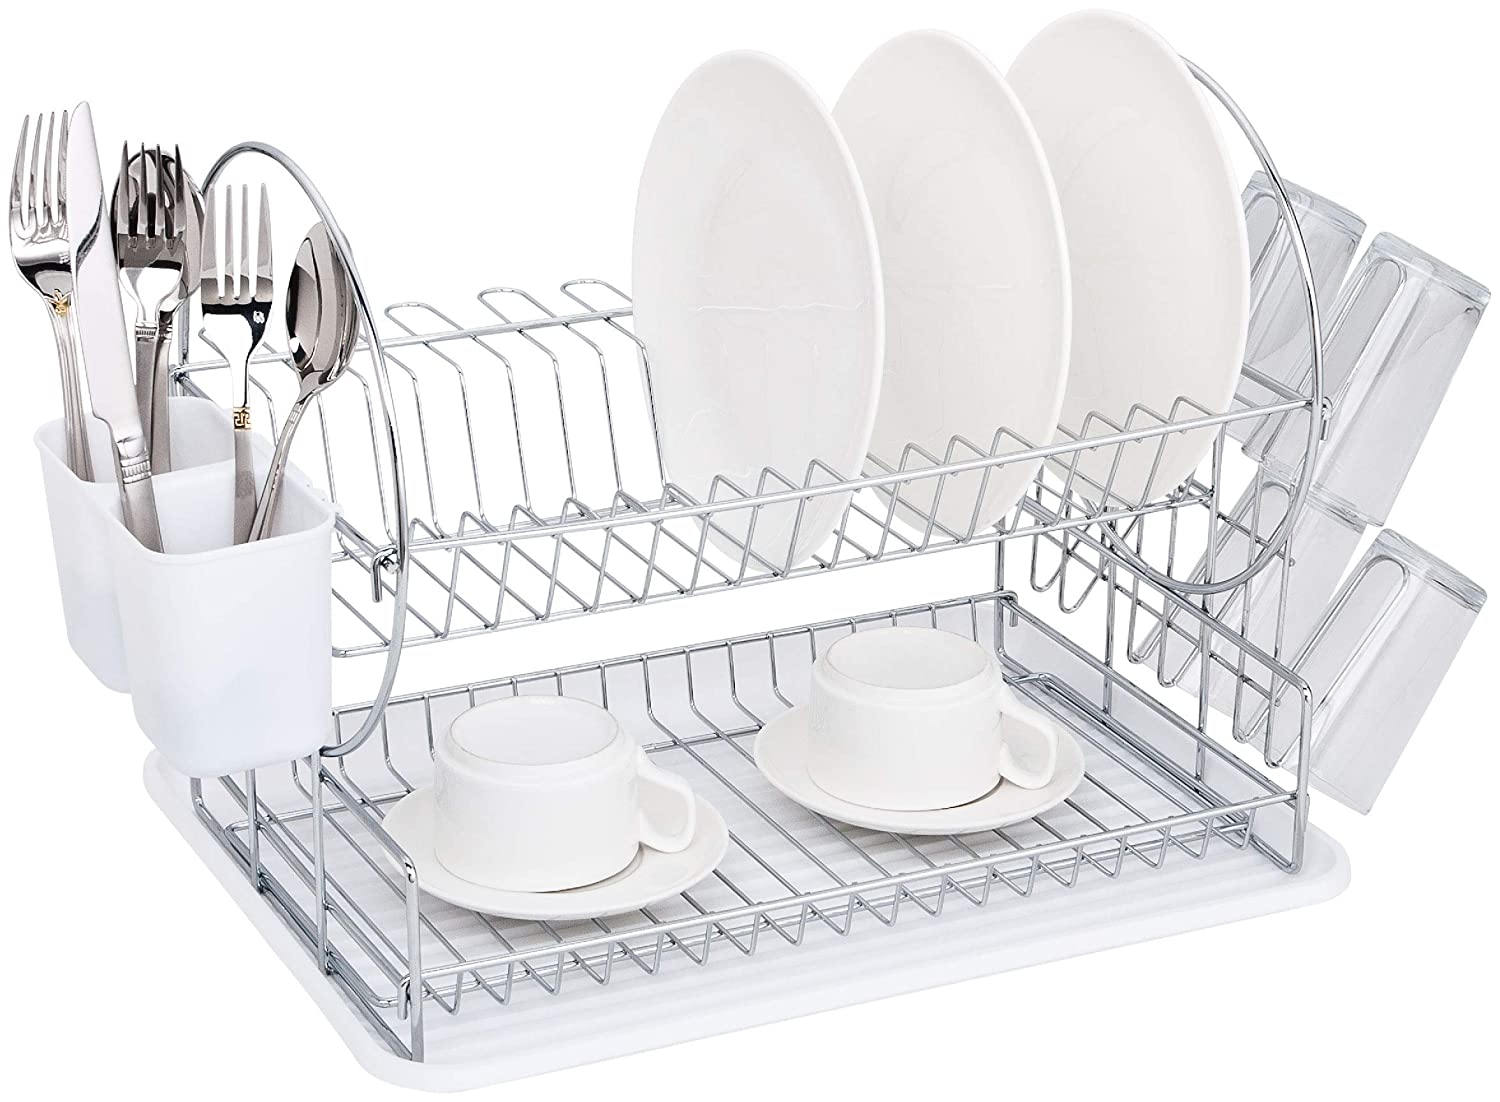 Deluxe 2-Tier Kitchen Counter Top Dish Drying Rack and Set With Cup and Cutlery Holder (Black) Hampton Home